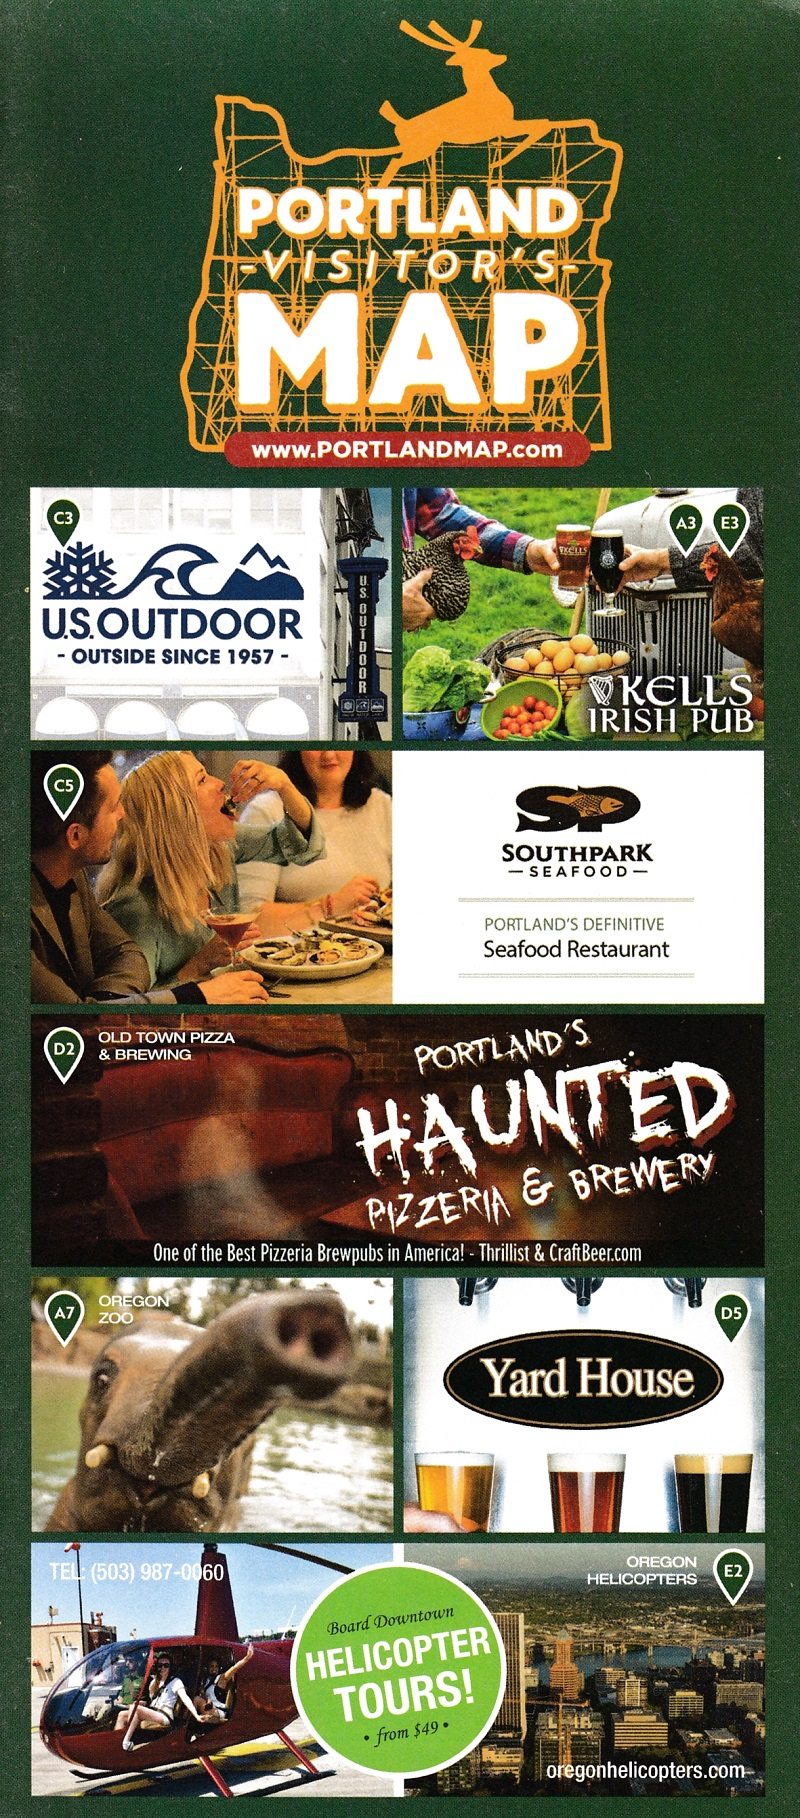 Portland Visitor's Map